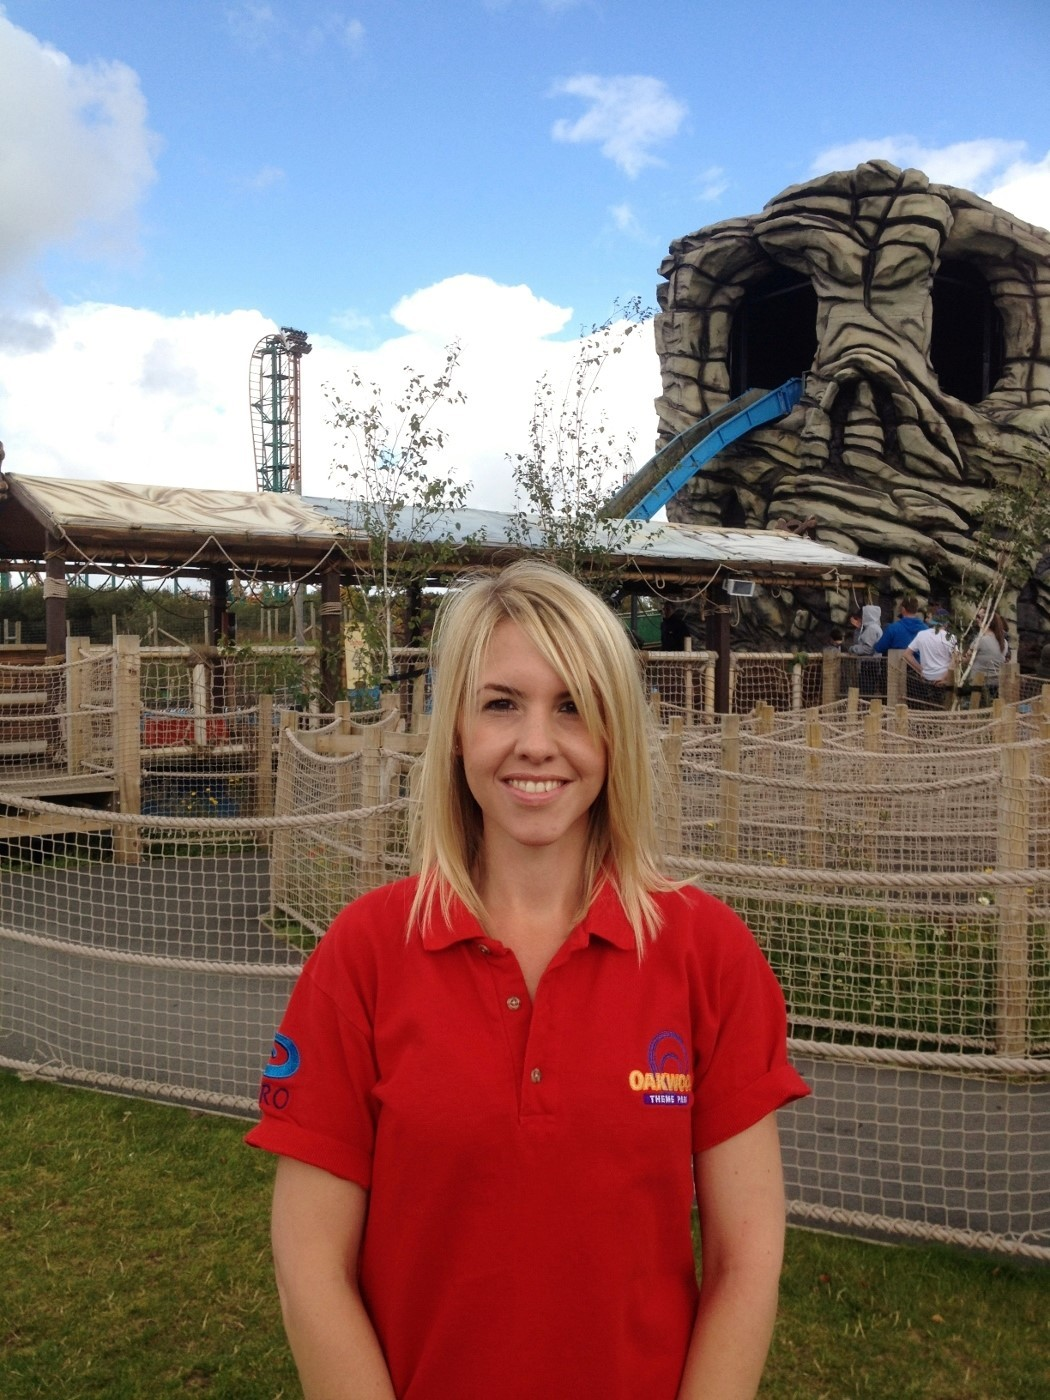 Exciting role: Clare Stansfield is the new boss at Oakwood. (9870299)